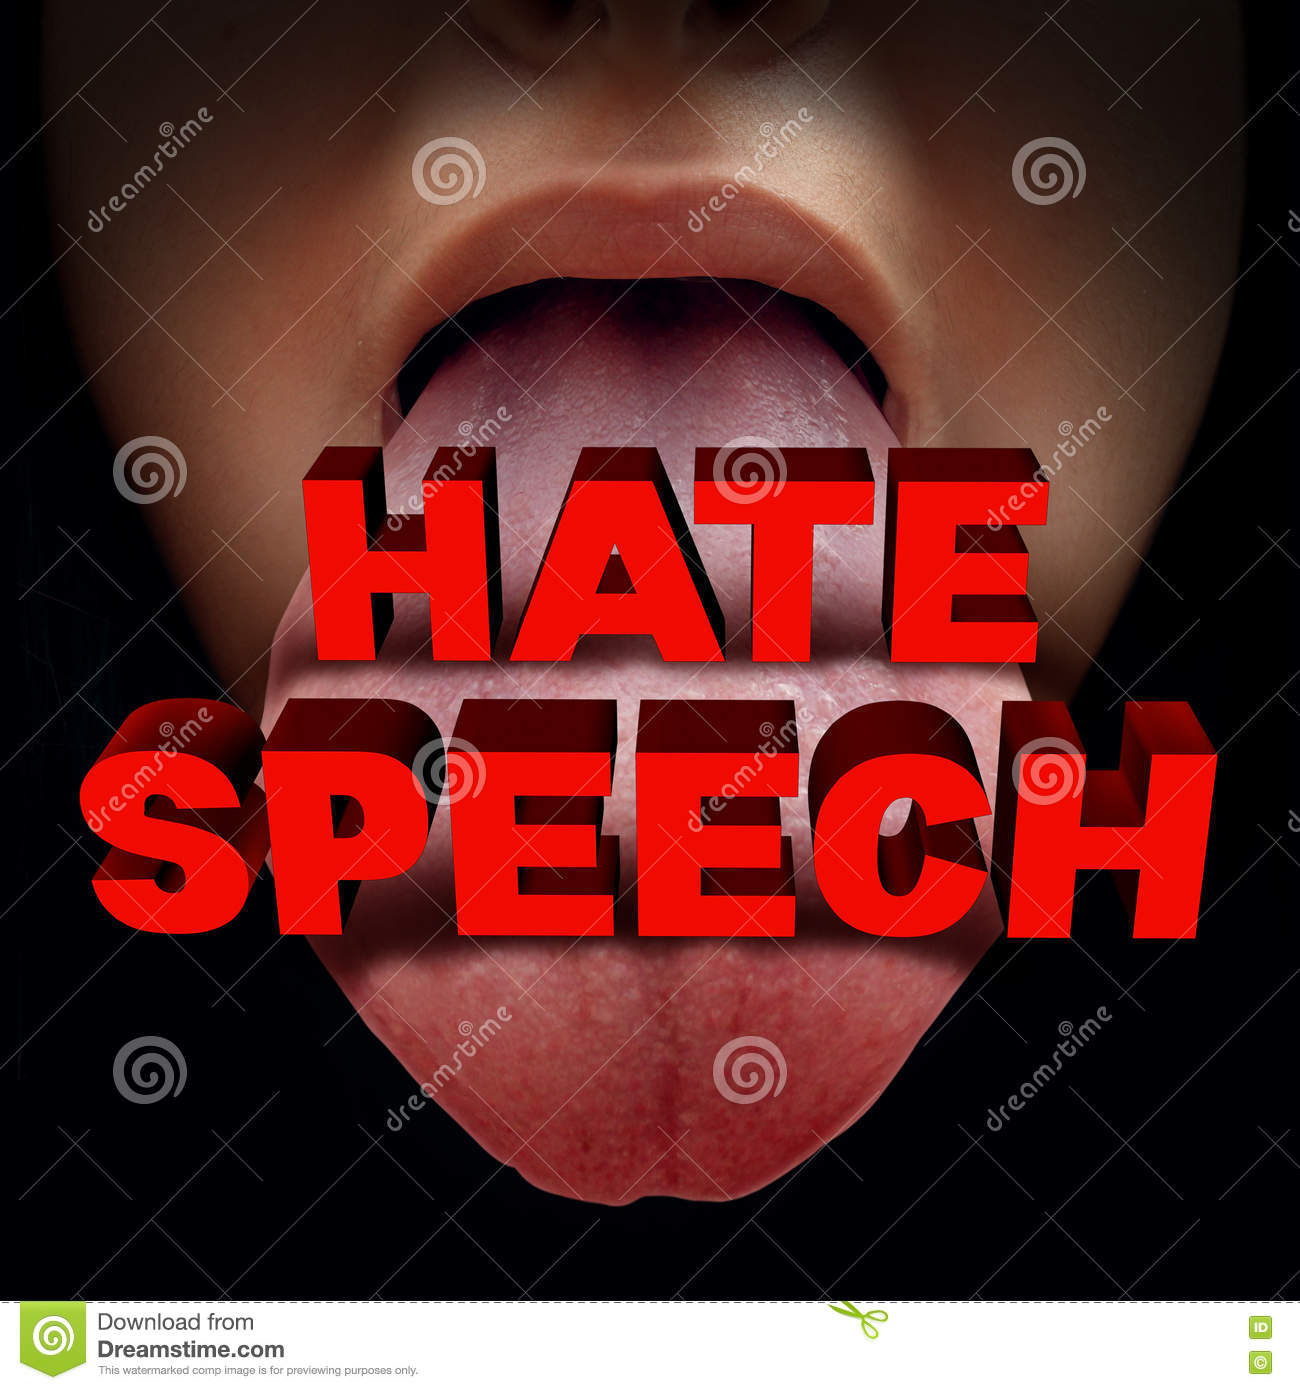 Hate Cartoons Illustrations Vector Stock Images 3319